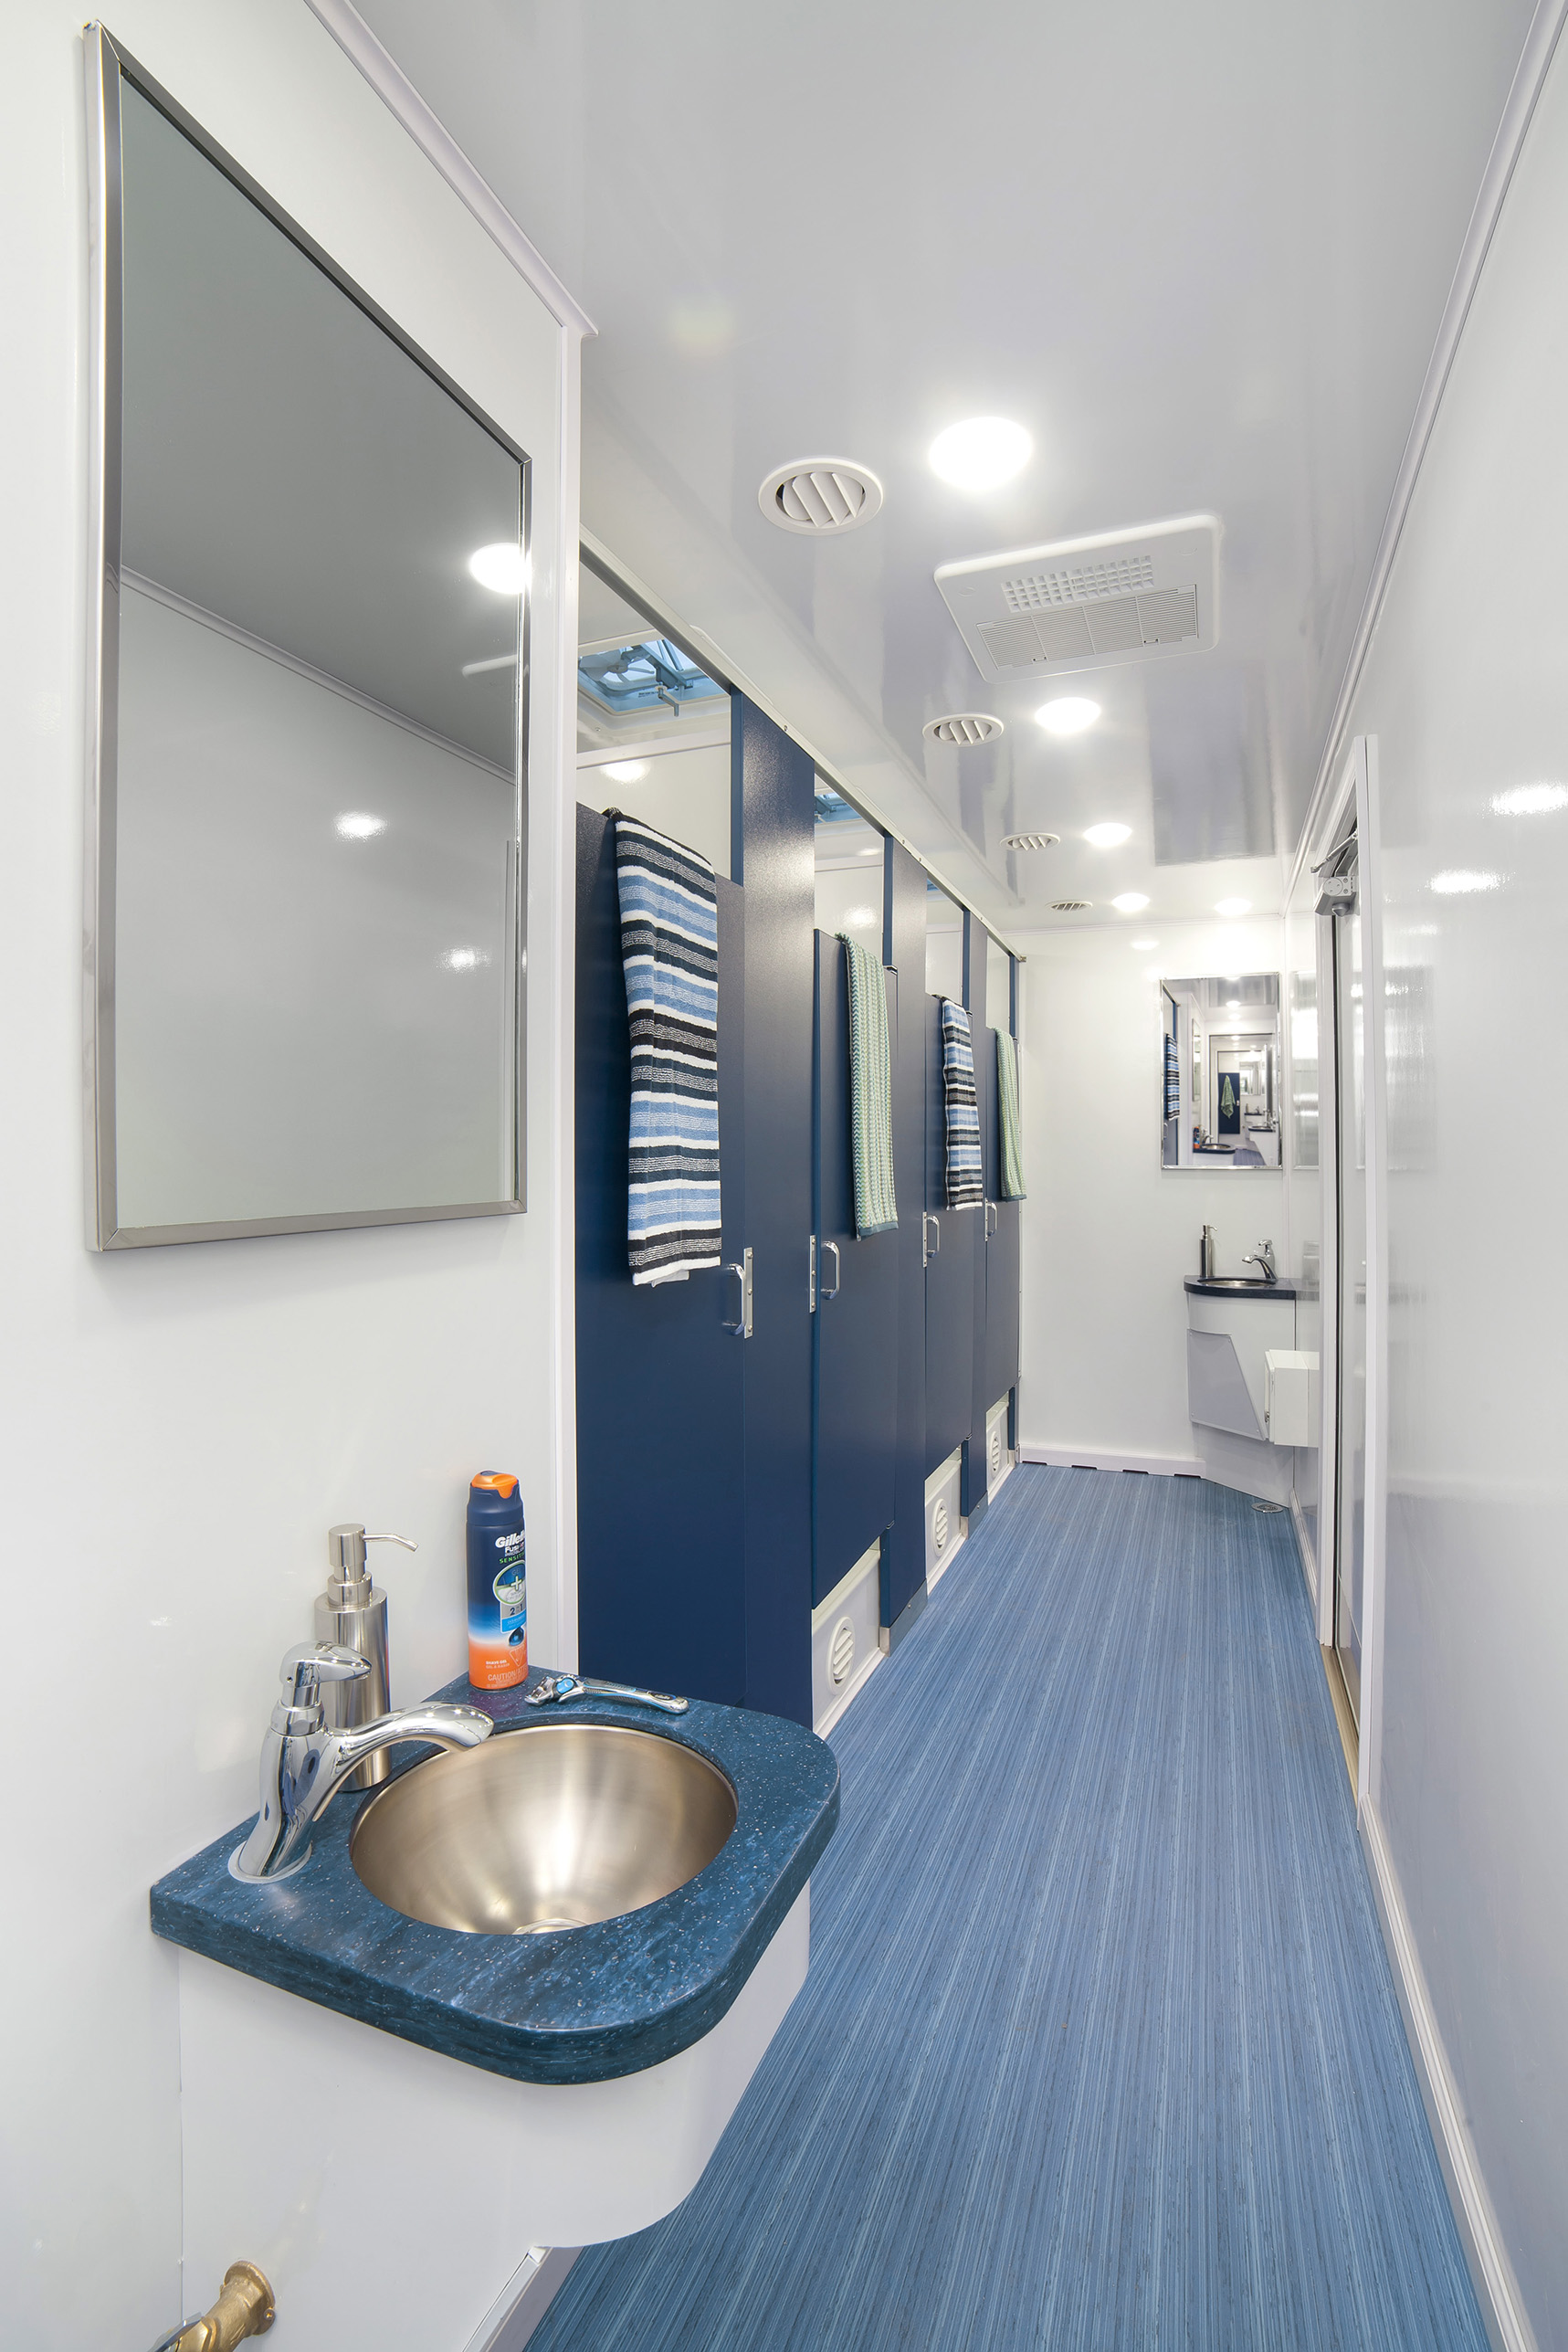 Restroom Trailers, Multiple Stall ADA Bathroom Trailers -Texas Outhouse